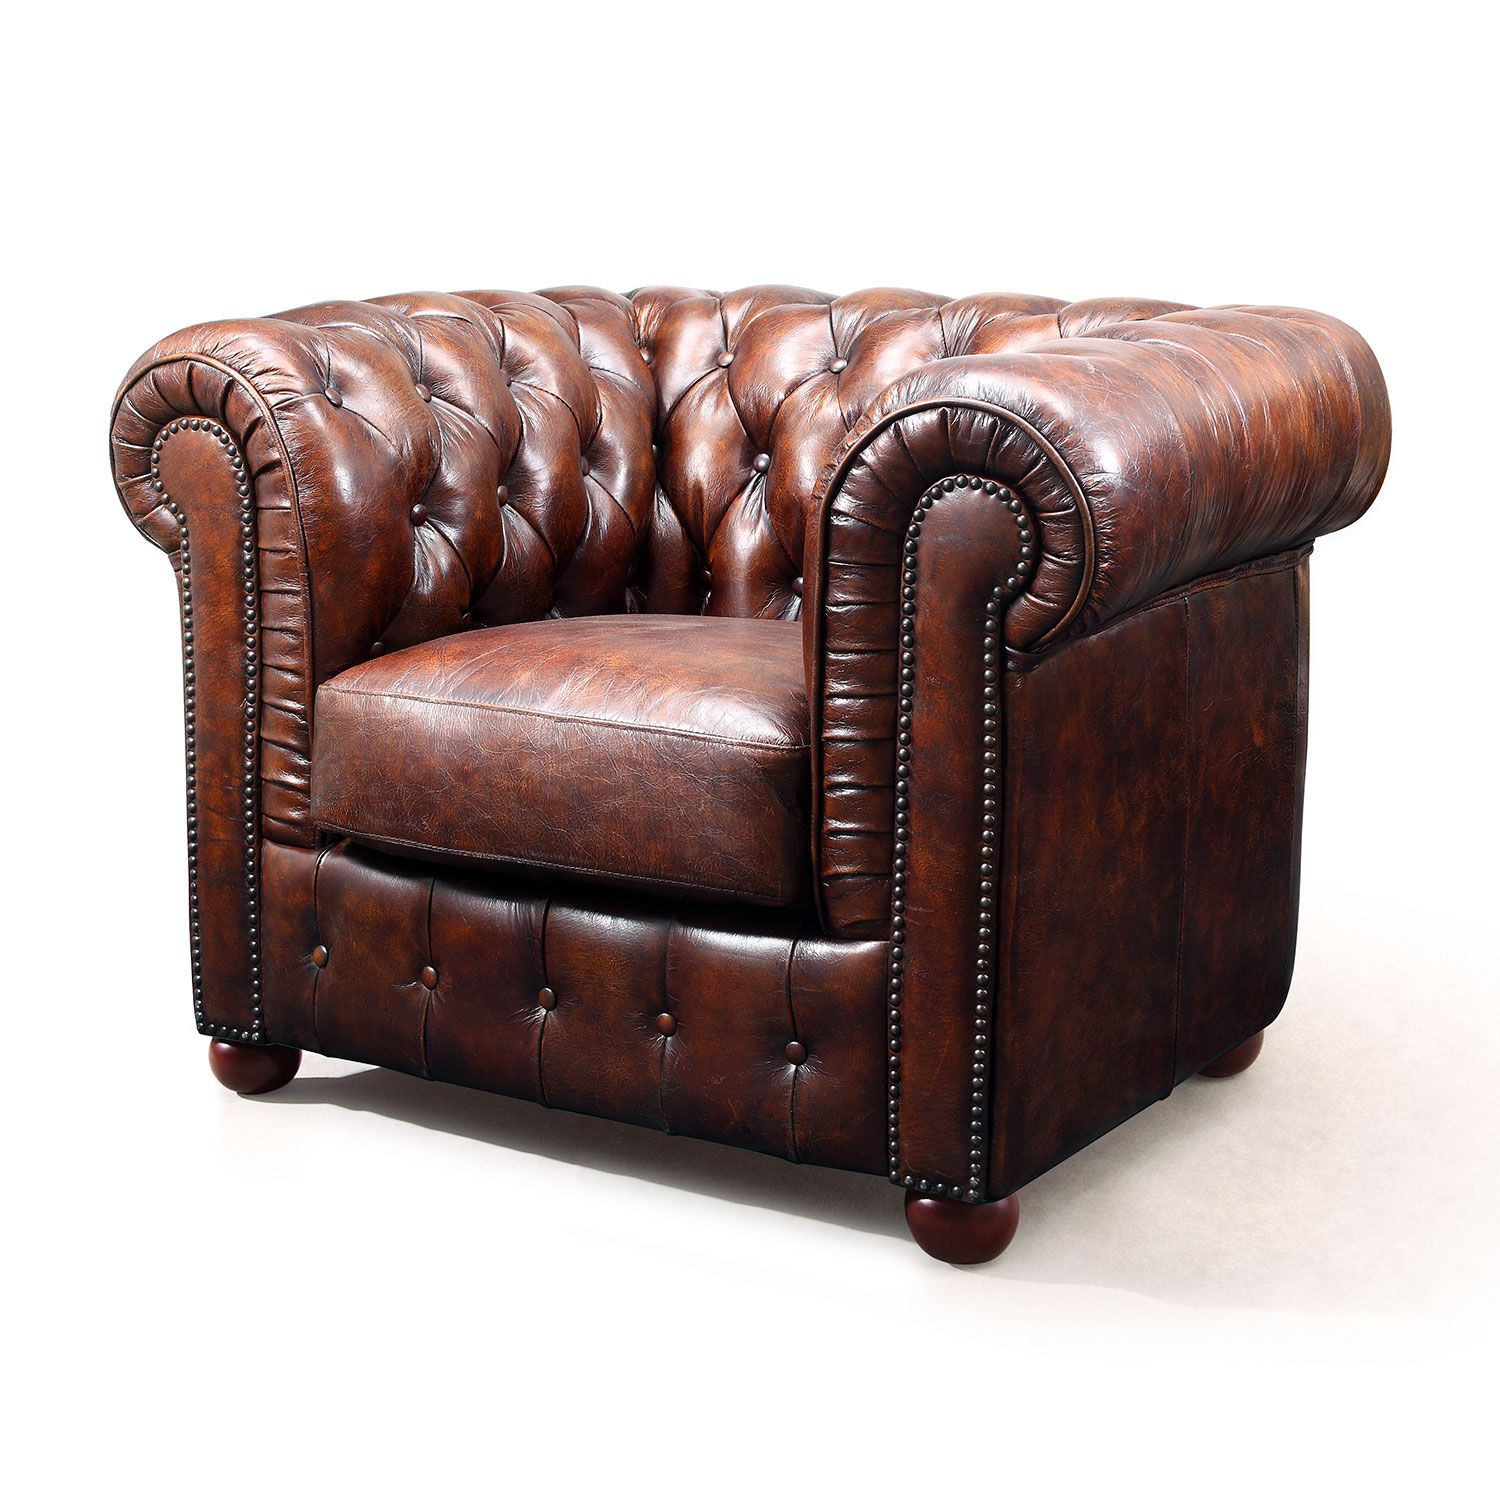 Fauteuil Bureau Chesterfield Fauteuil Chesterfield Original Collection Les Cuirs